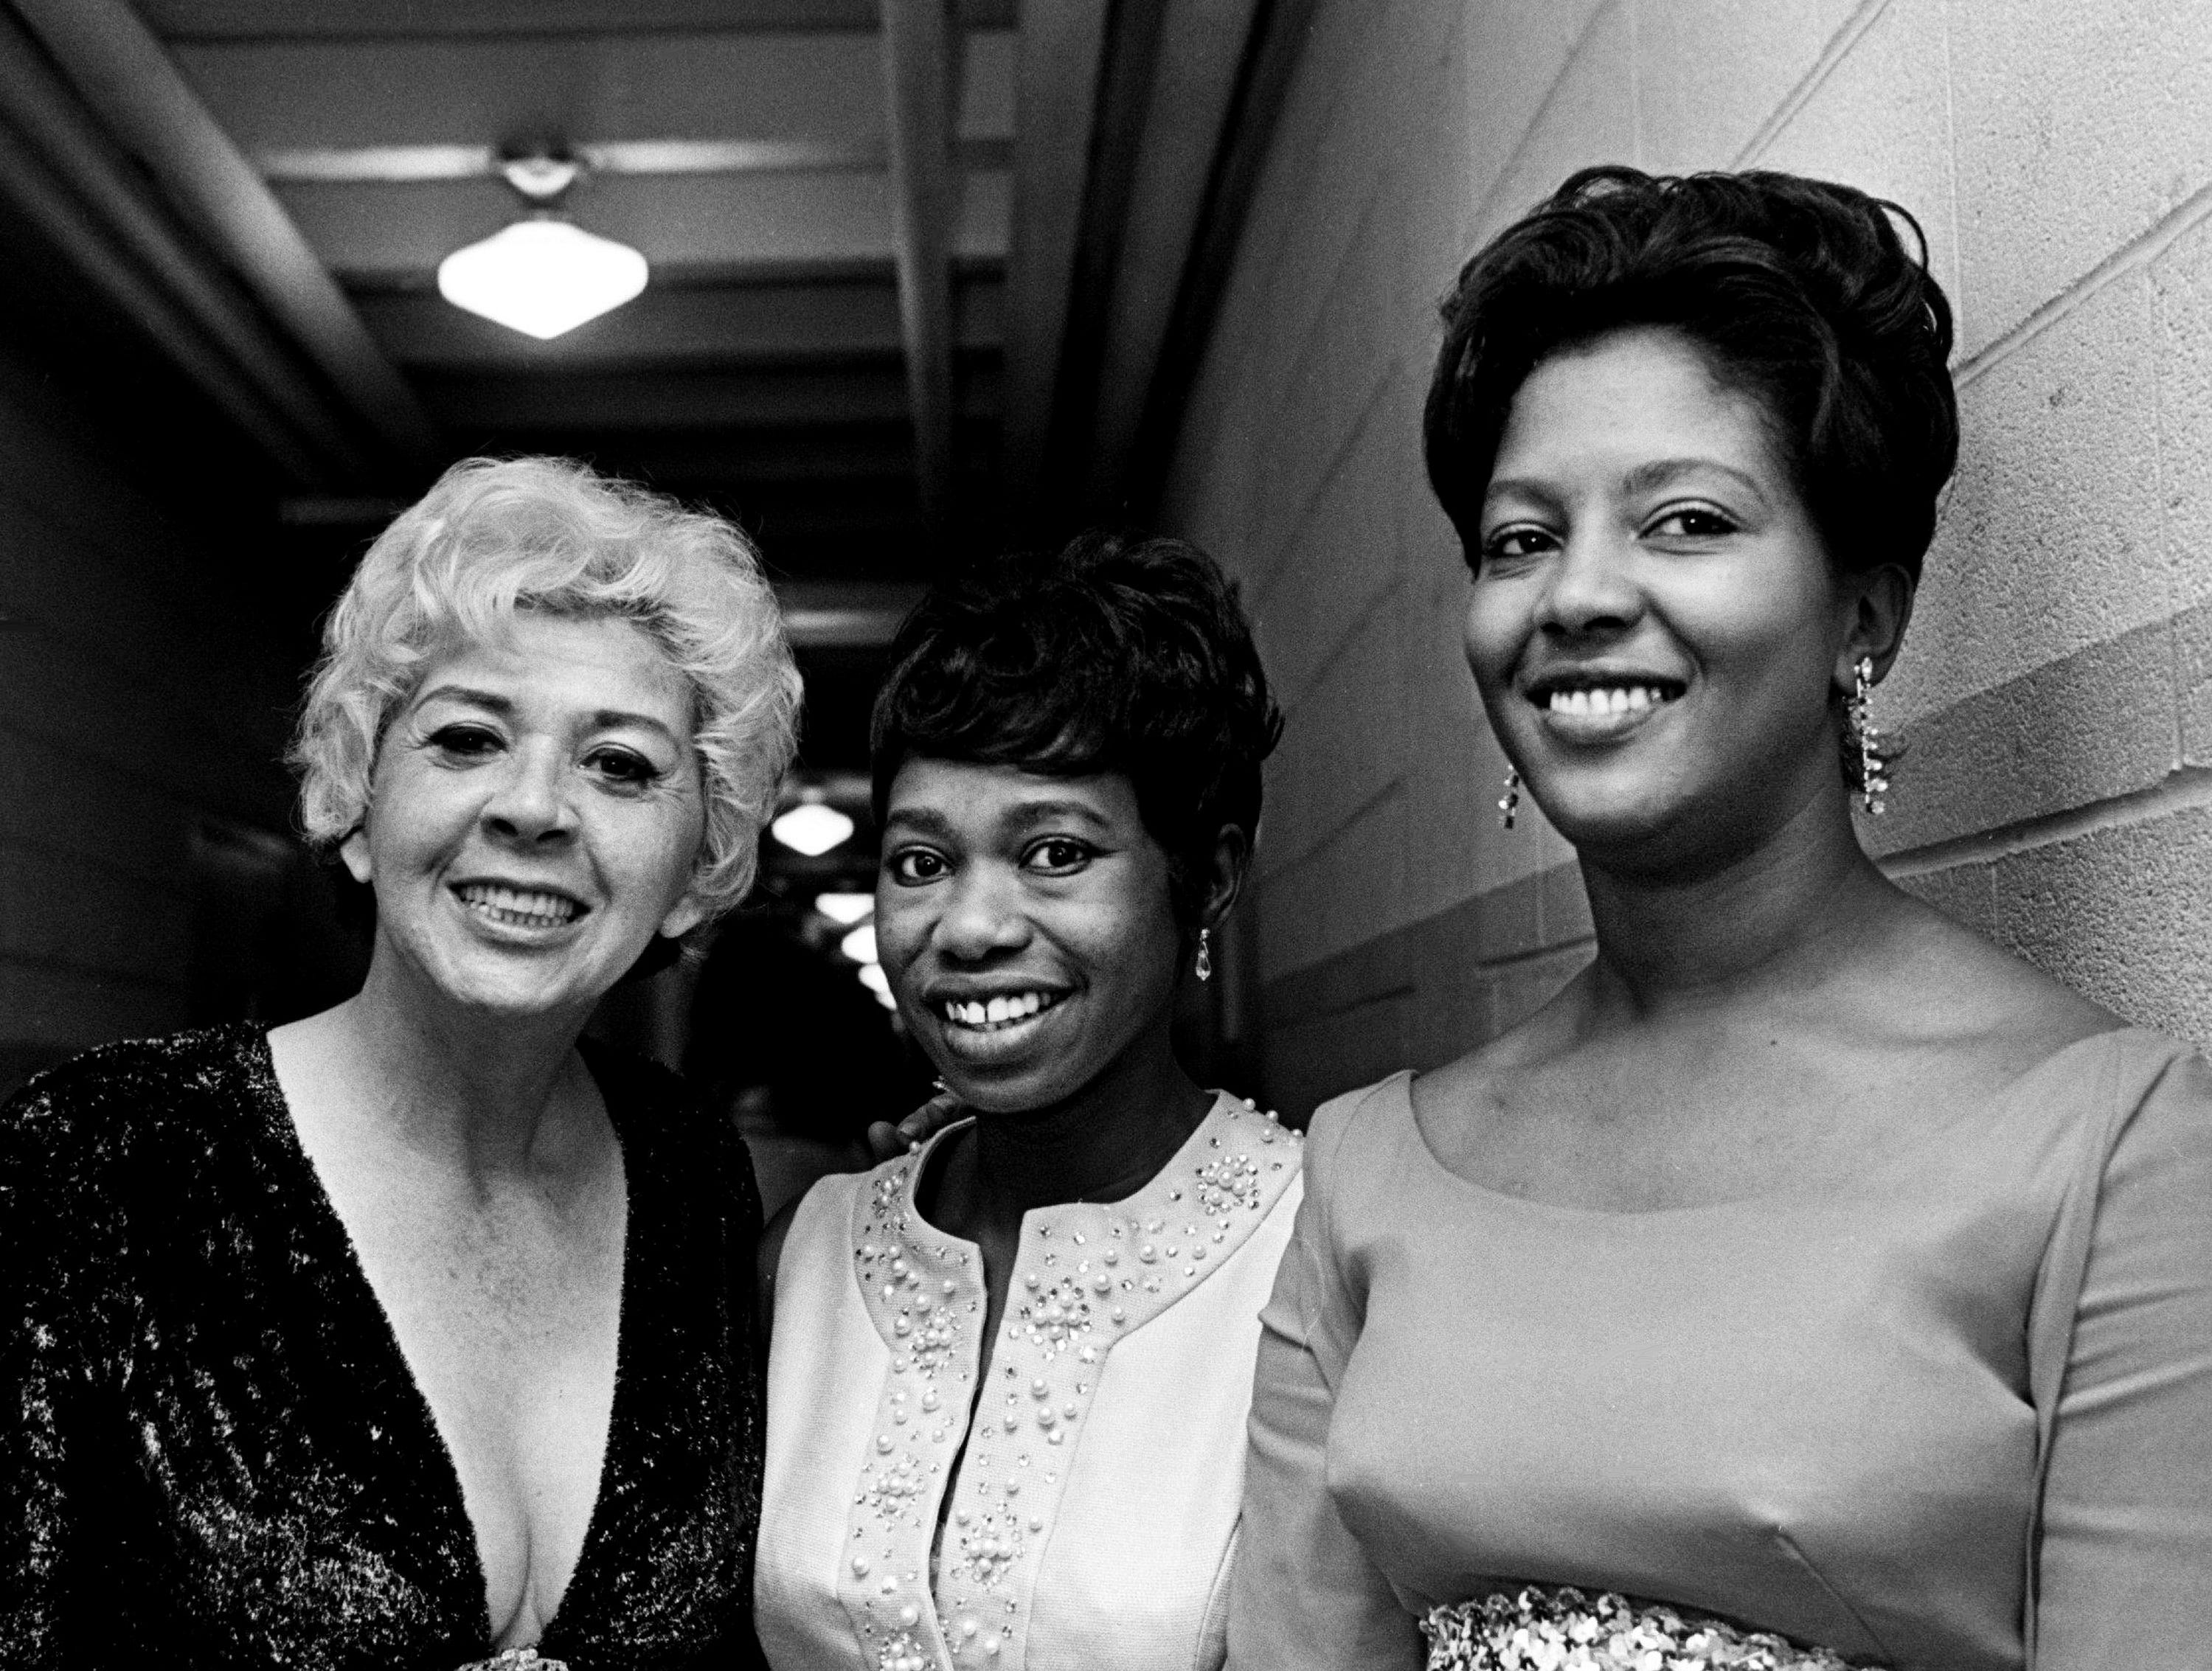 Zelma Redding, center, the widow of the late Otis Redding, shares a moment with a couple of other guests backstage toward the end of the 11th annual Grammy Award show at the National Guard Armory in Nashville March 12, 1969.